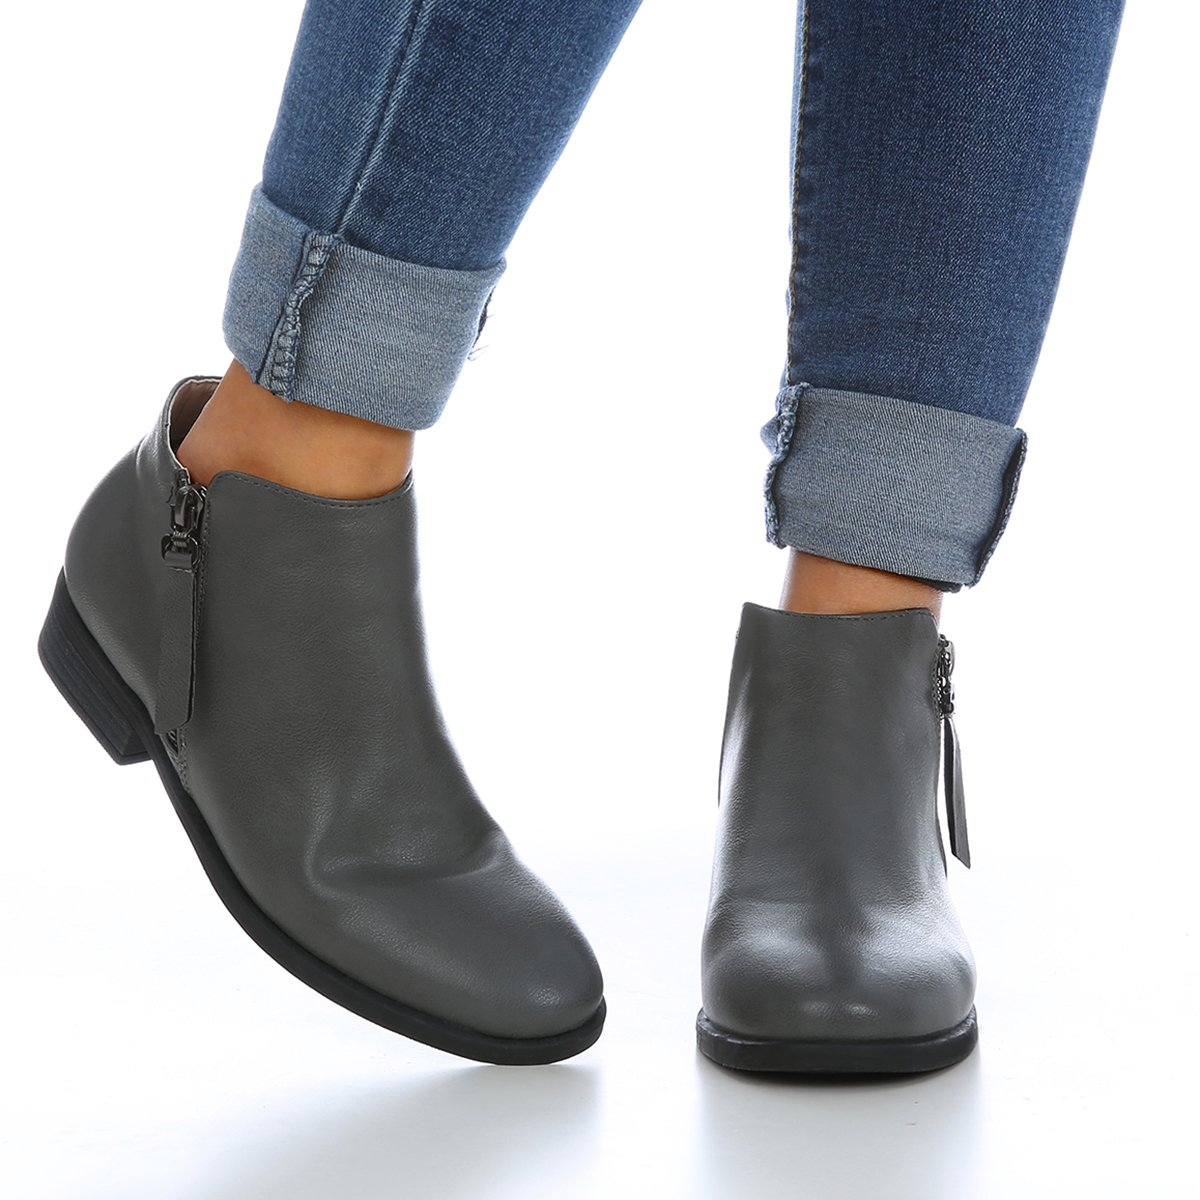 Daomumen Boots for Women Ankle Booties Low Heel Western Side Zipper Pointed Toe Solid Color